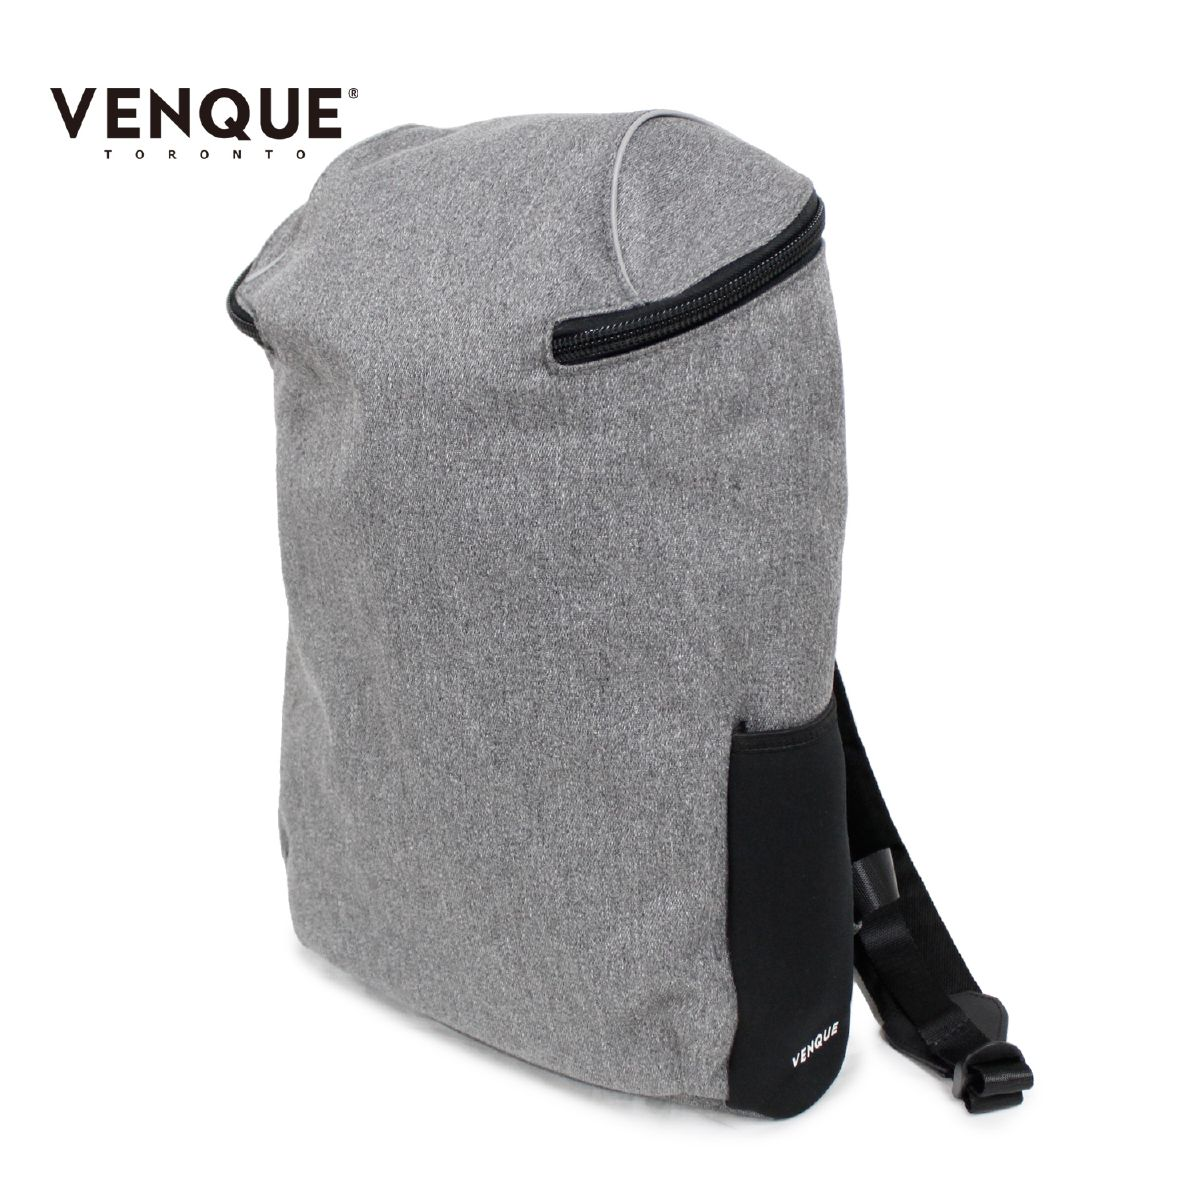 VENQUE ヴェンク K2 Backpack メンズ/レディース グレー OS